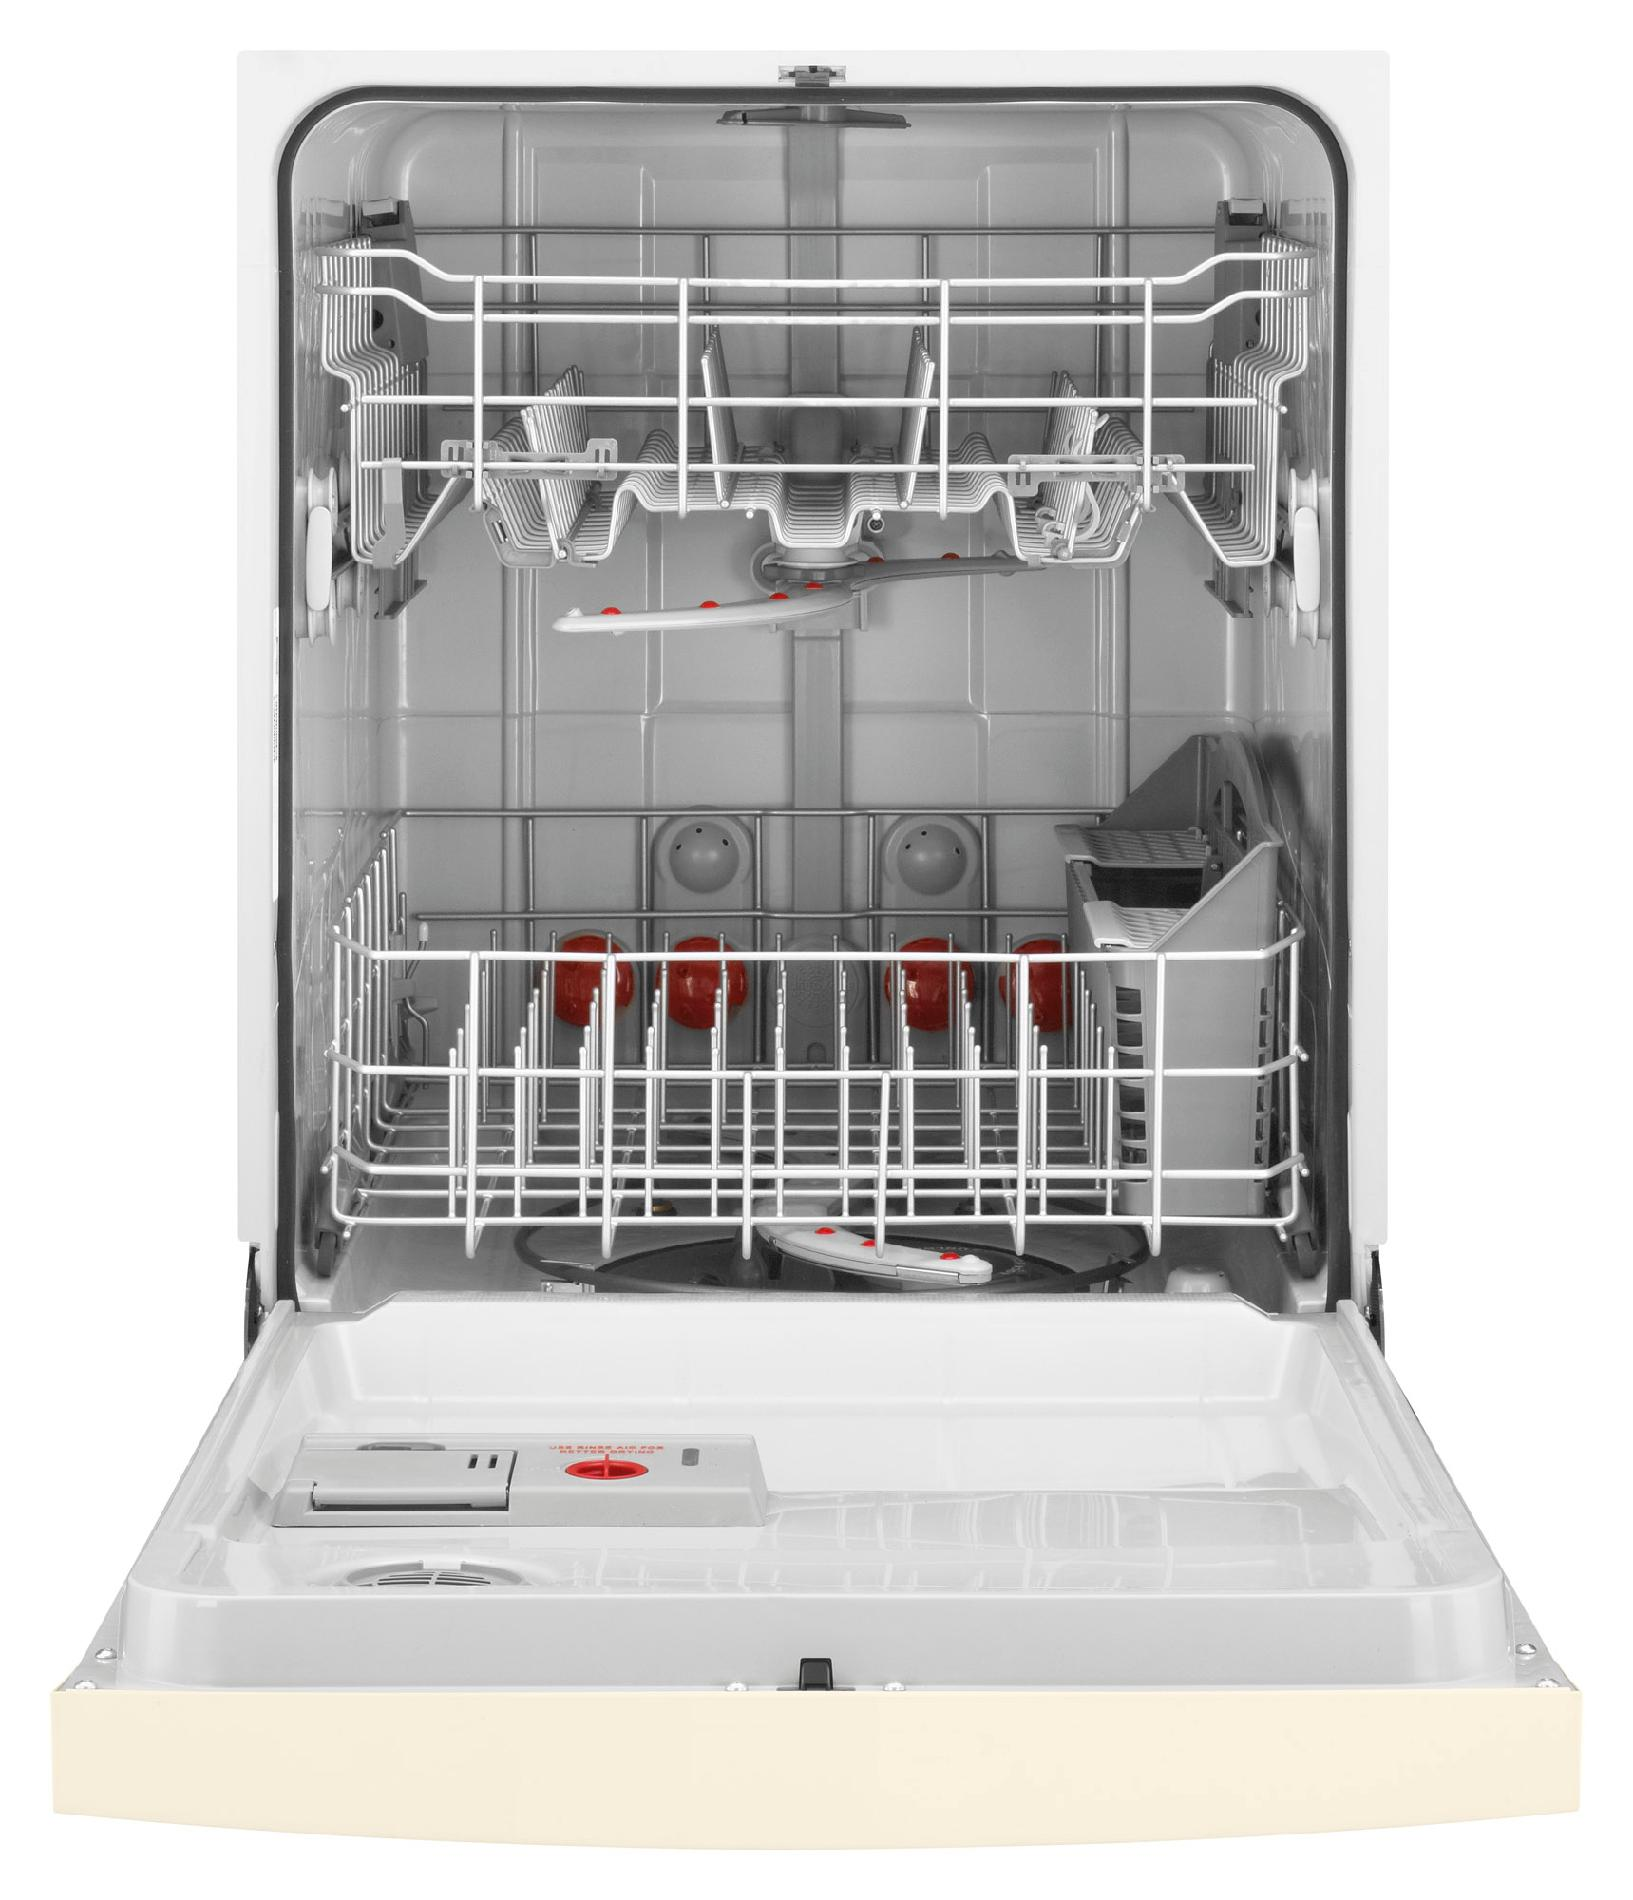 "Kenmore 24"" Built-In Dishwasher w/ TurboZone™, Rotating Spray Jets - Bisque"